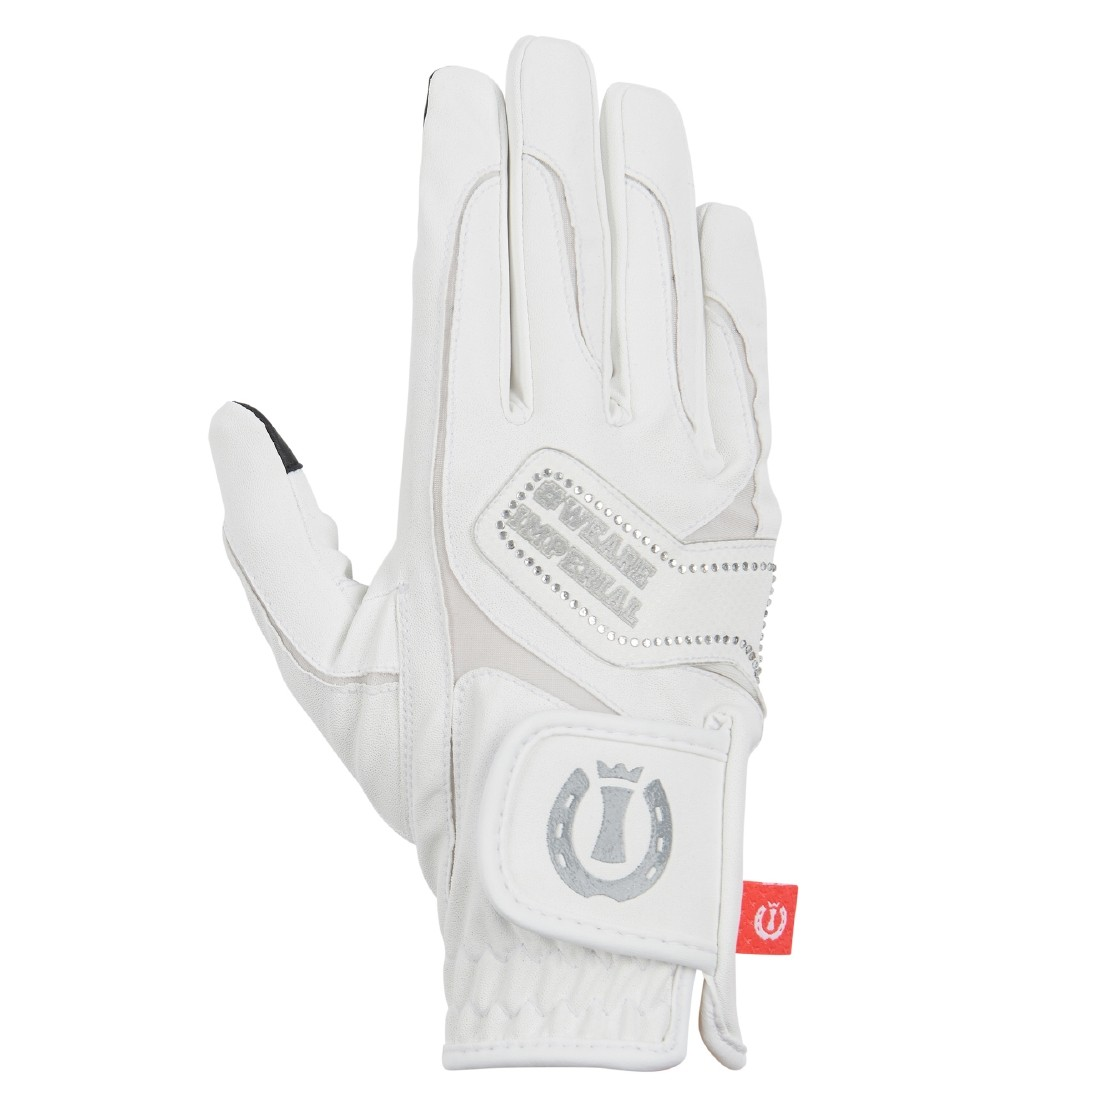 Handschuhe The Basics XL White